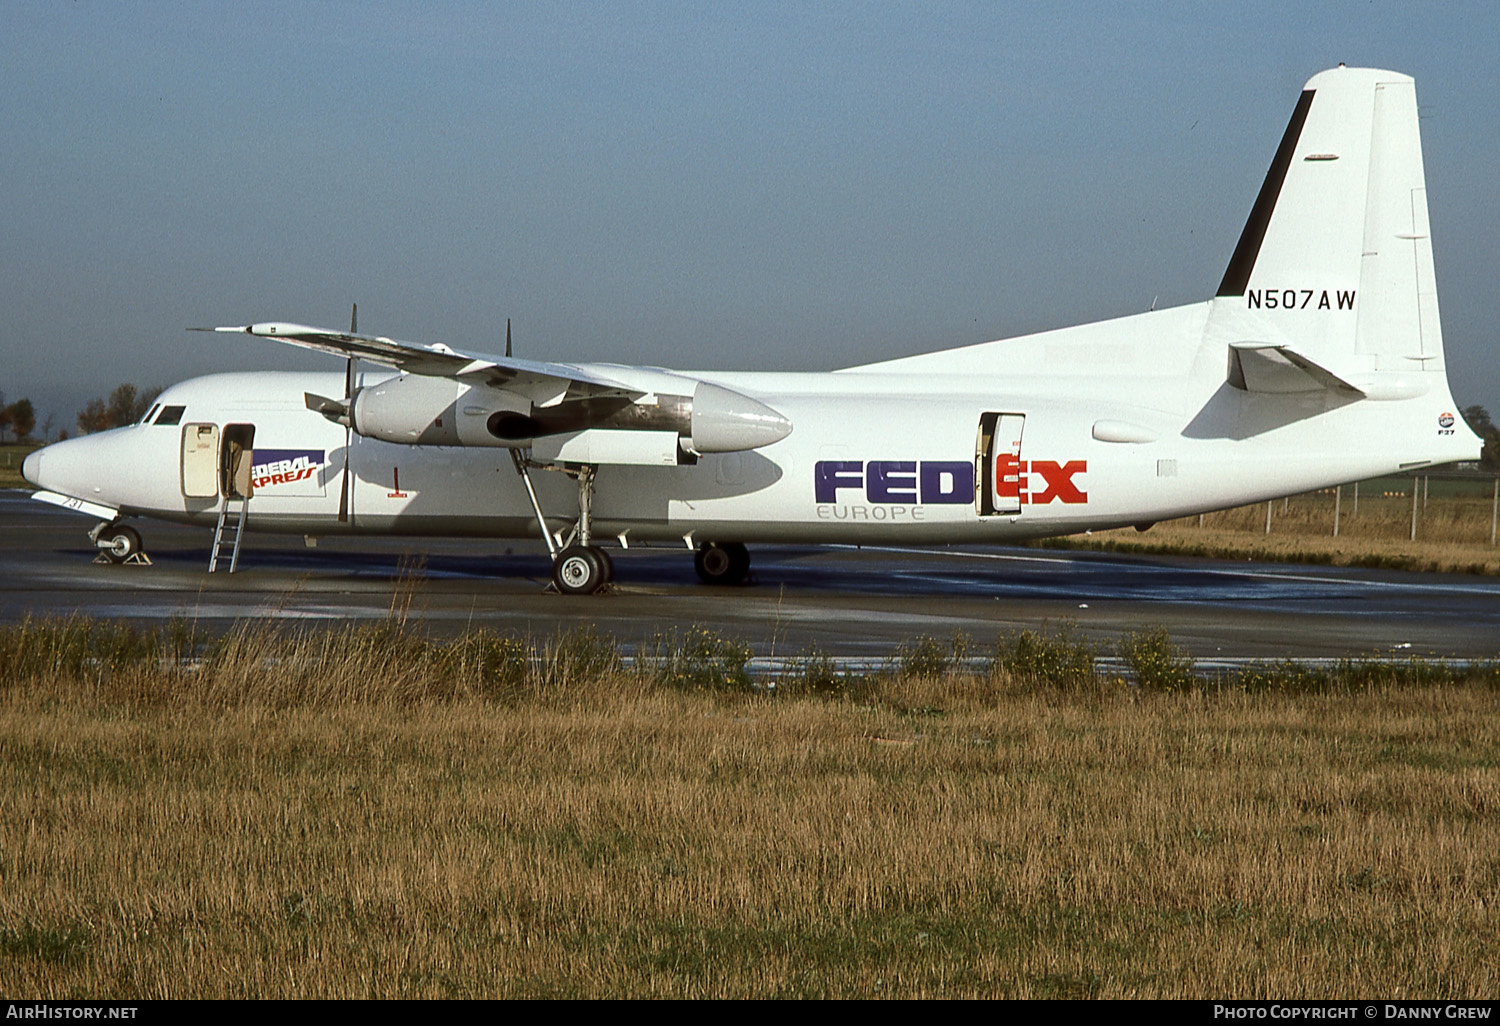 Aircraft Photo of N504AW / N507AW | Fokker F27-500 Friendship | Fedex - Federal Express Europe | AirHistory.net